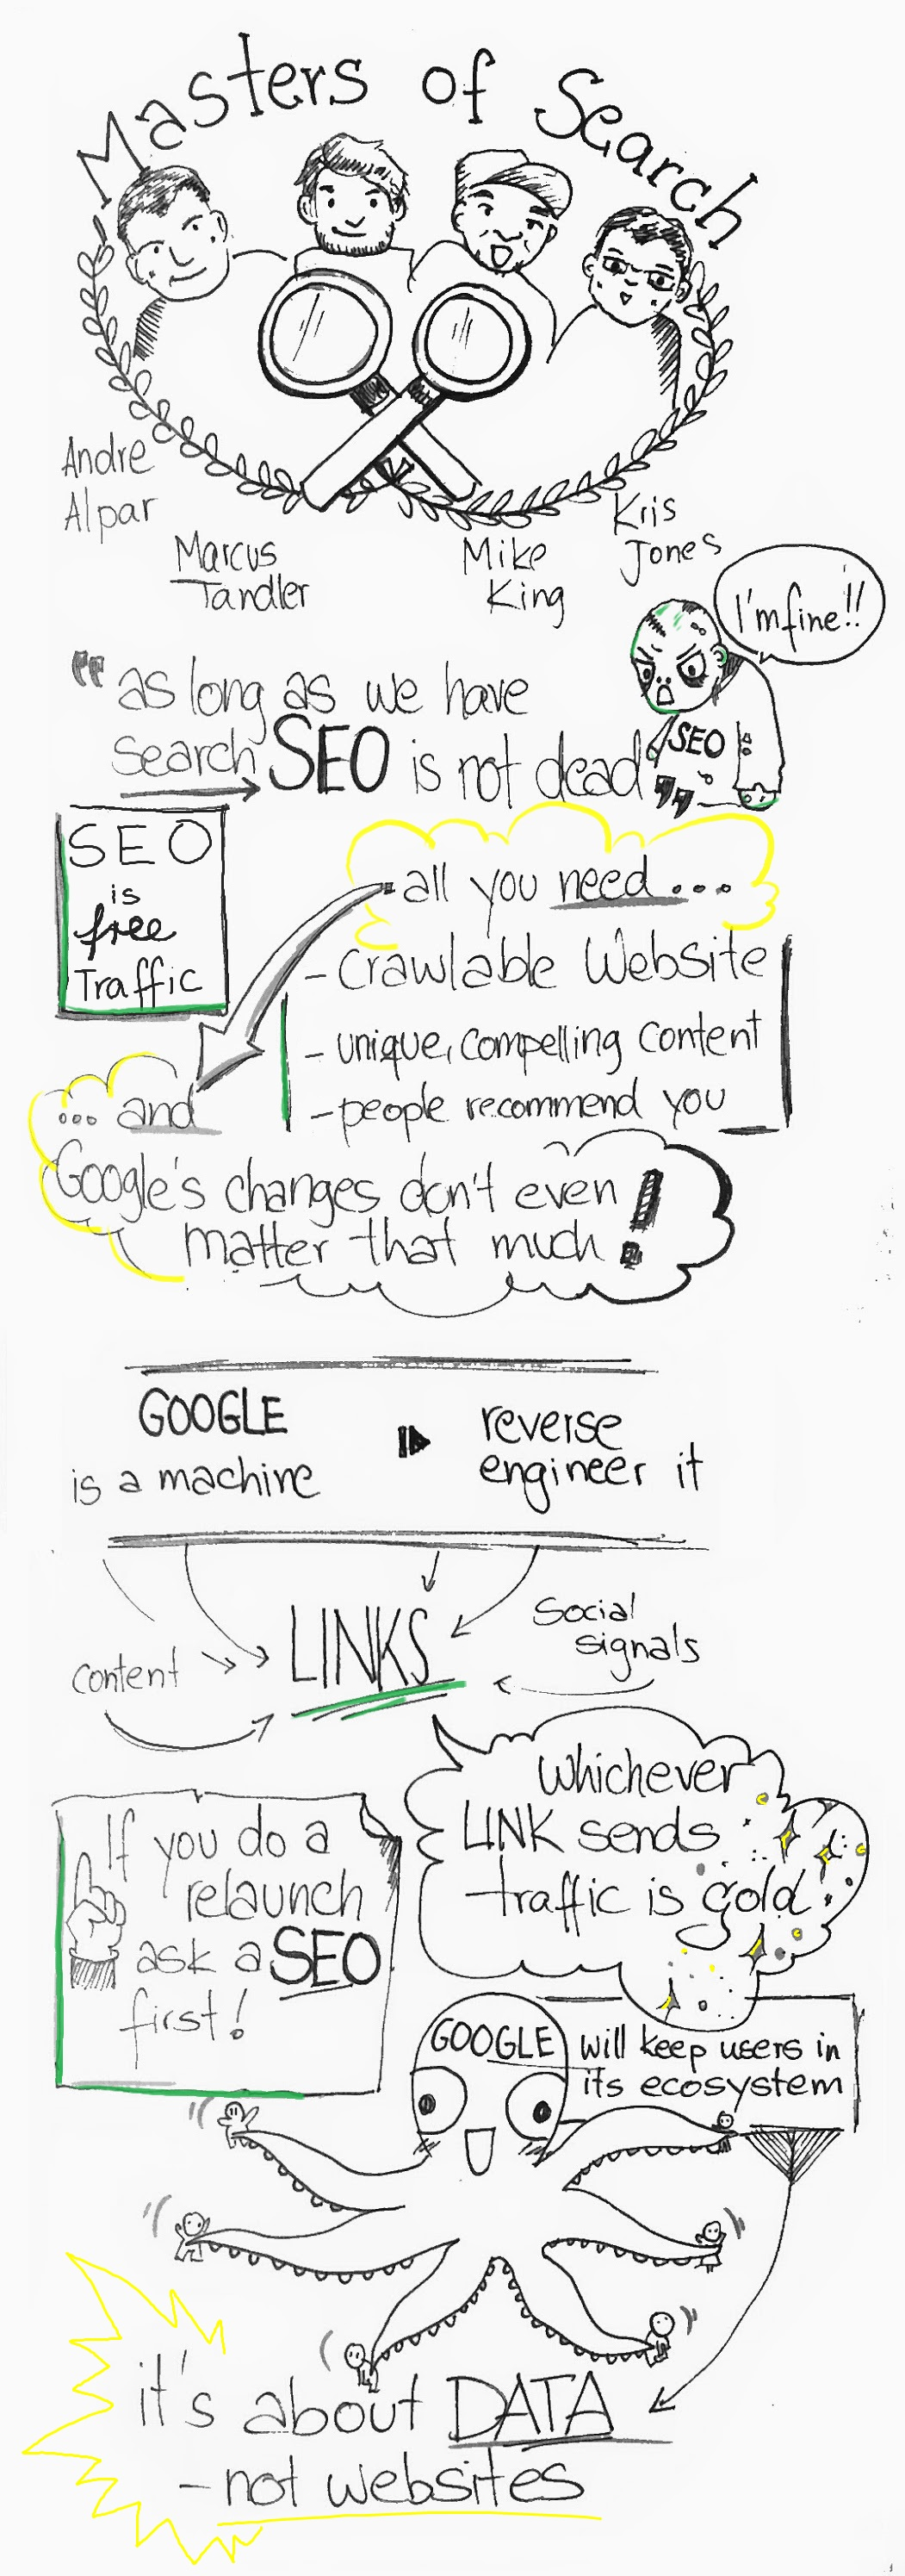 sketchnote 5master of search